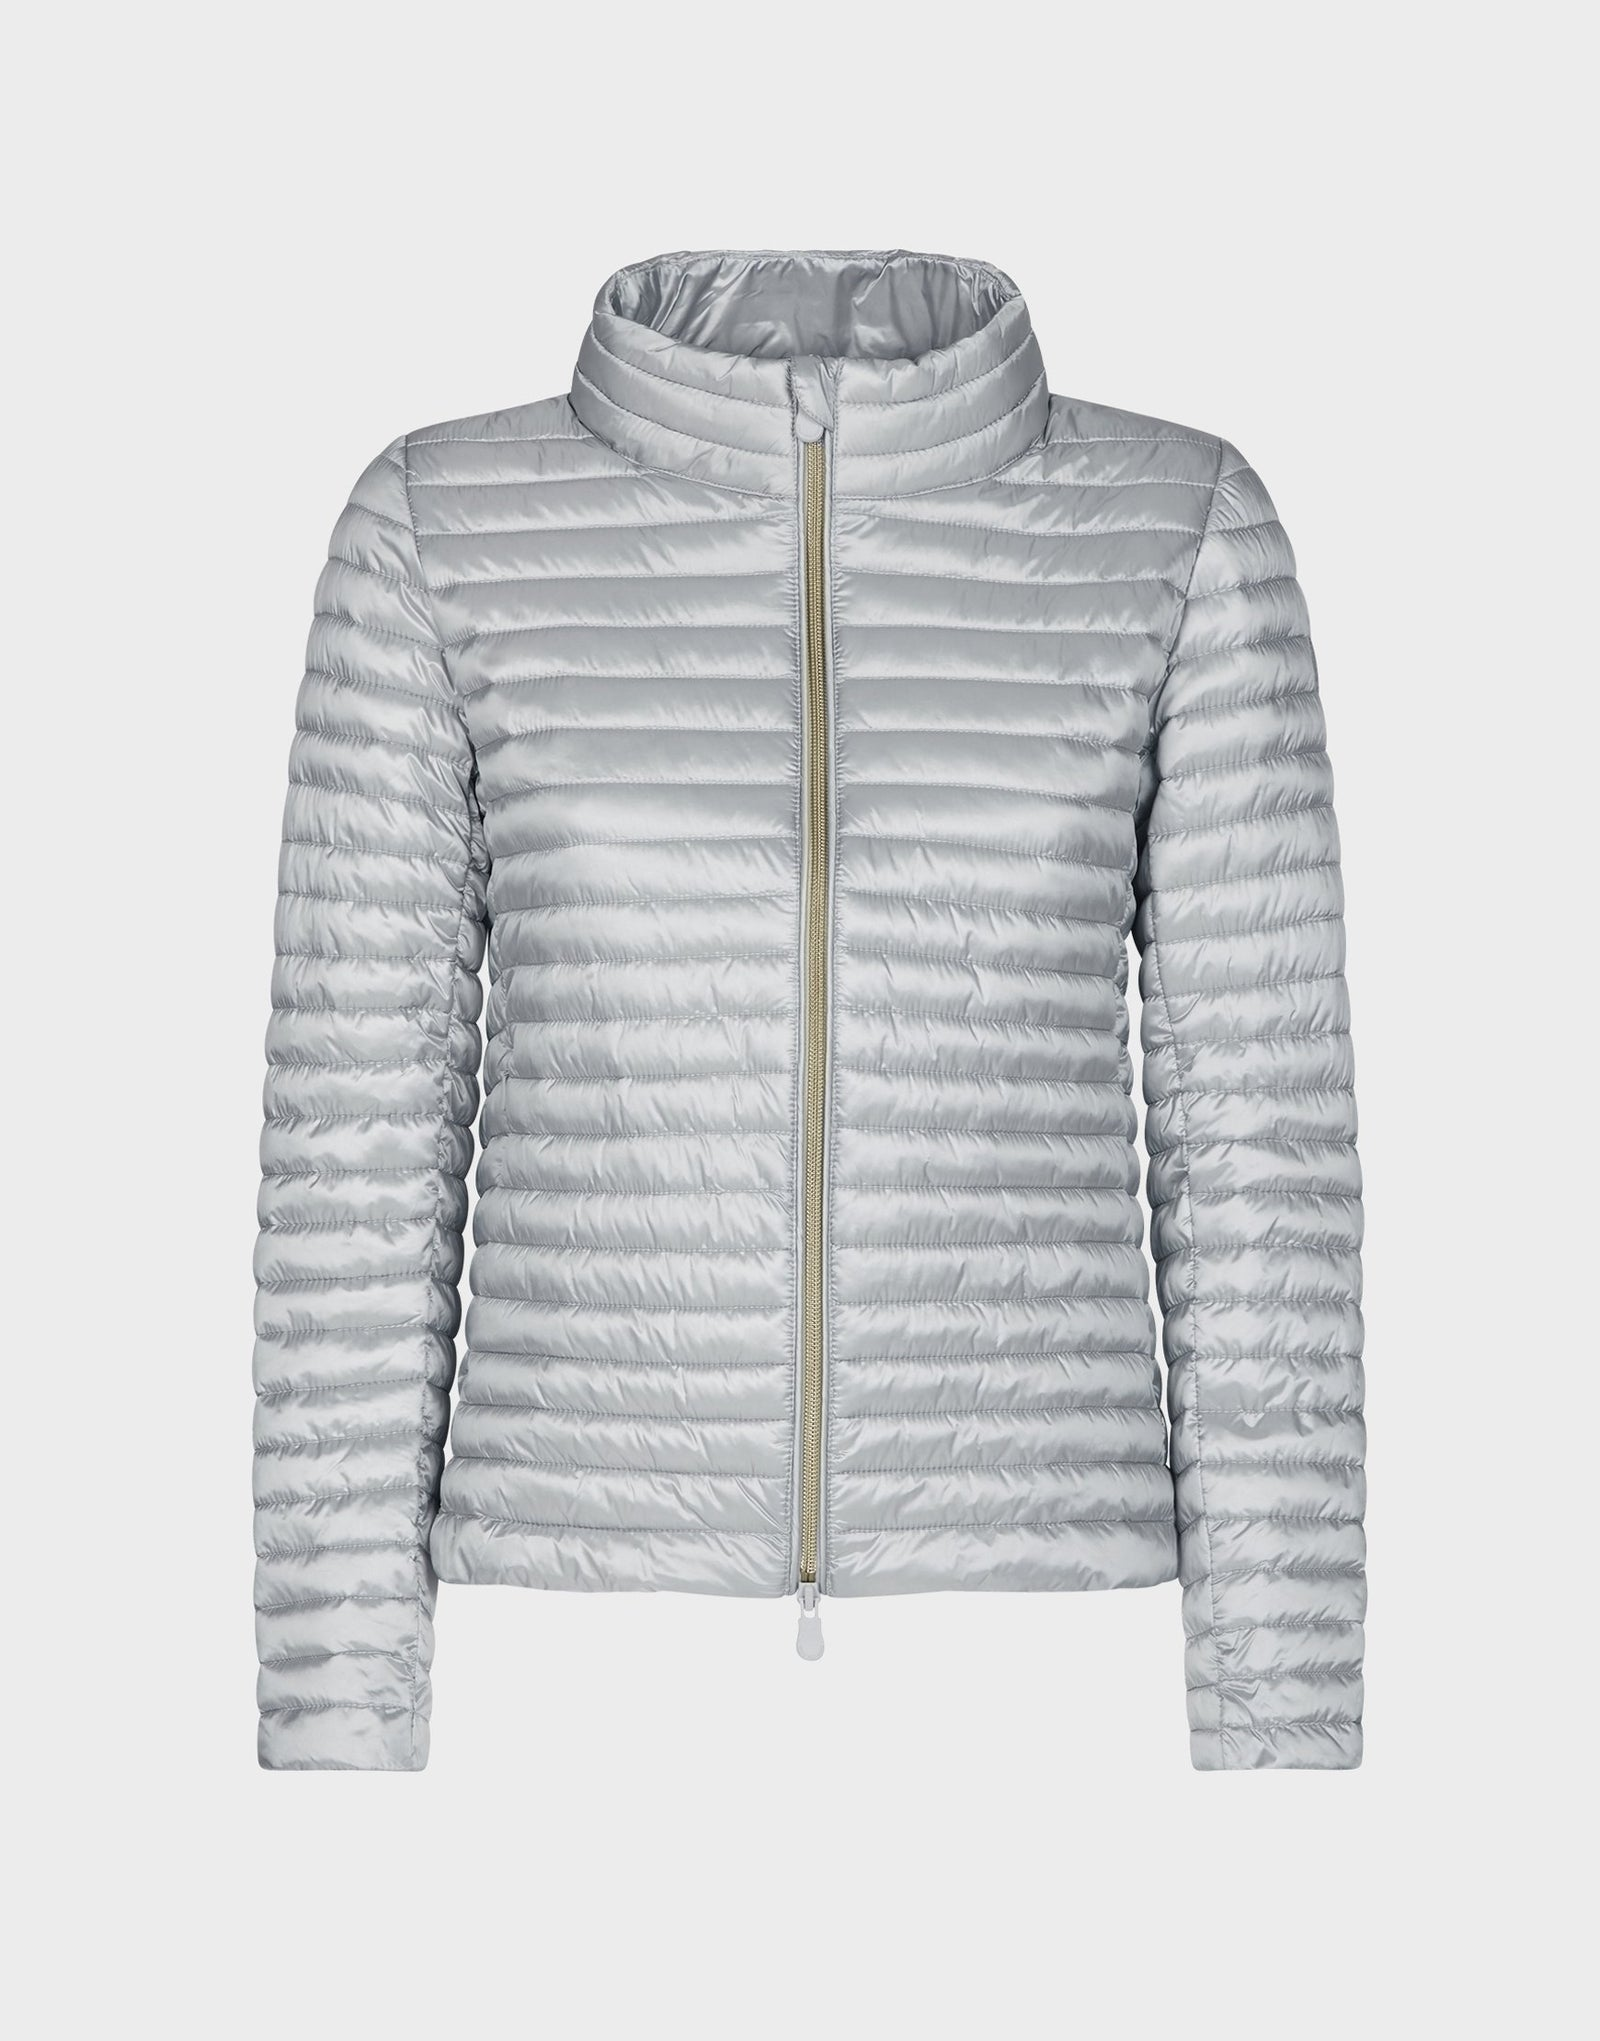 Save the Duck Spring 2020 IRISX Jacket - Luxe EQ